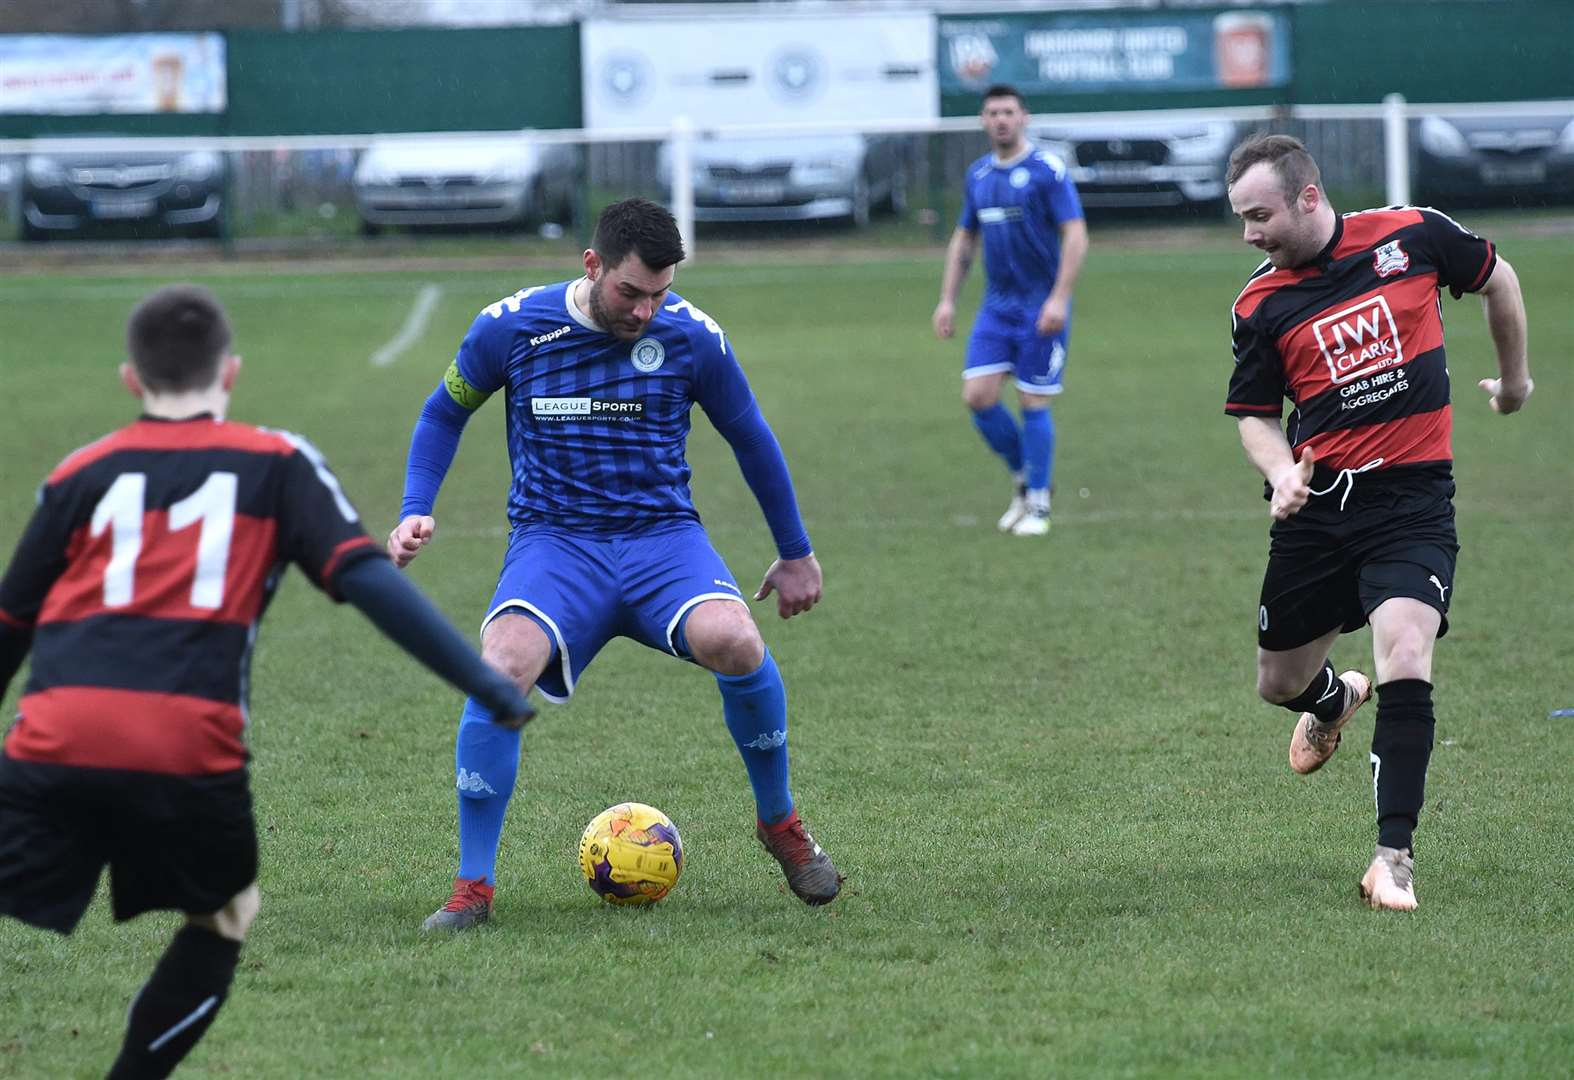 Harrowby United's magnificent seven extends unbeaten run